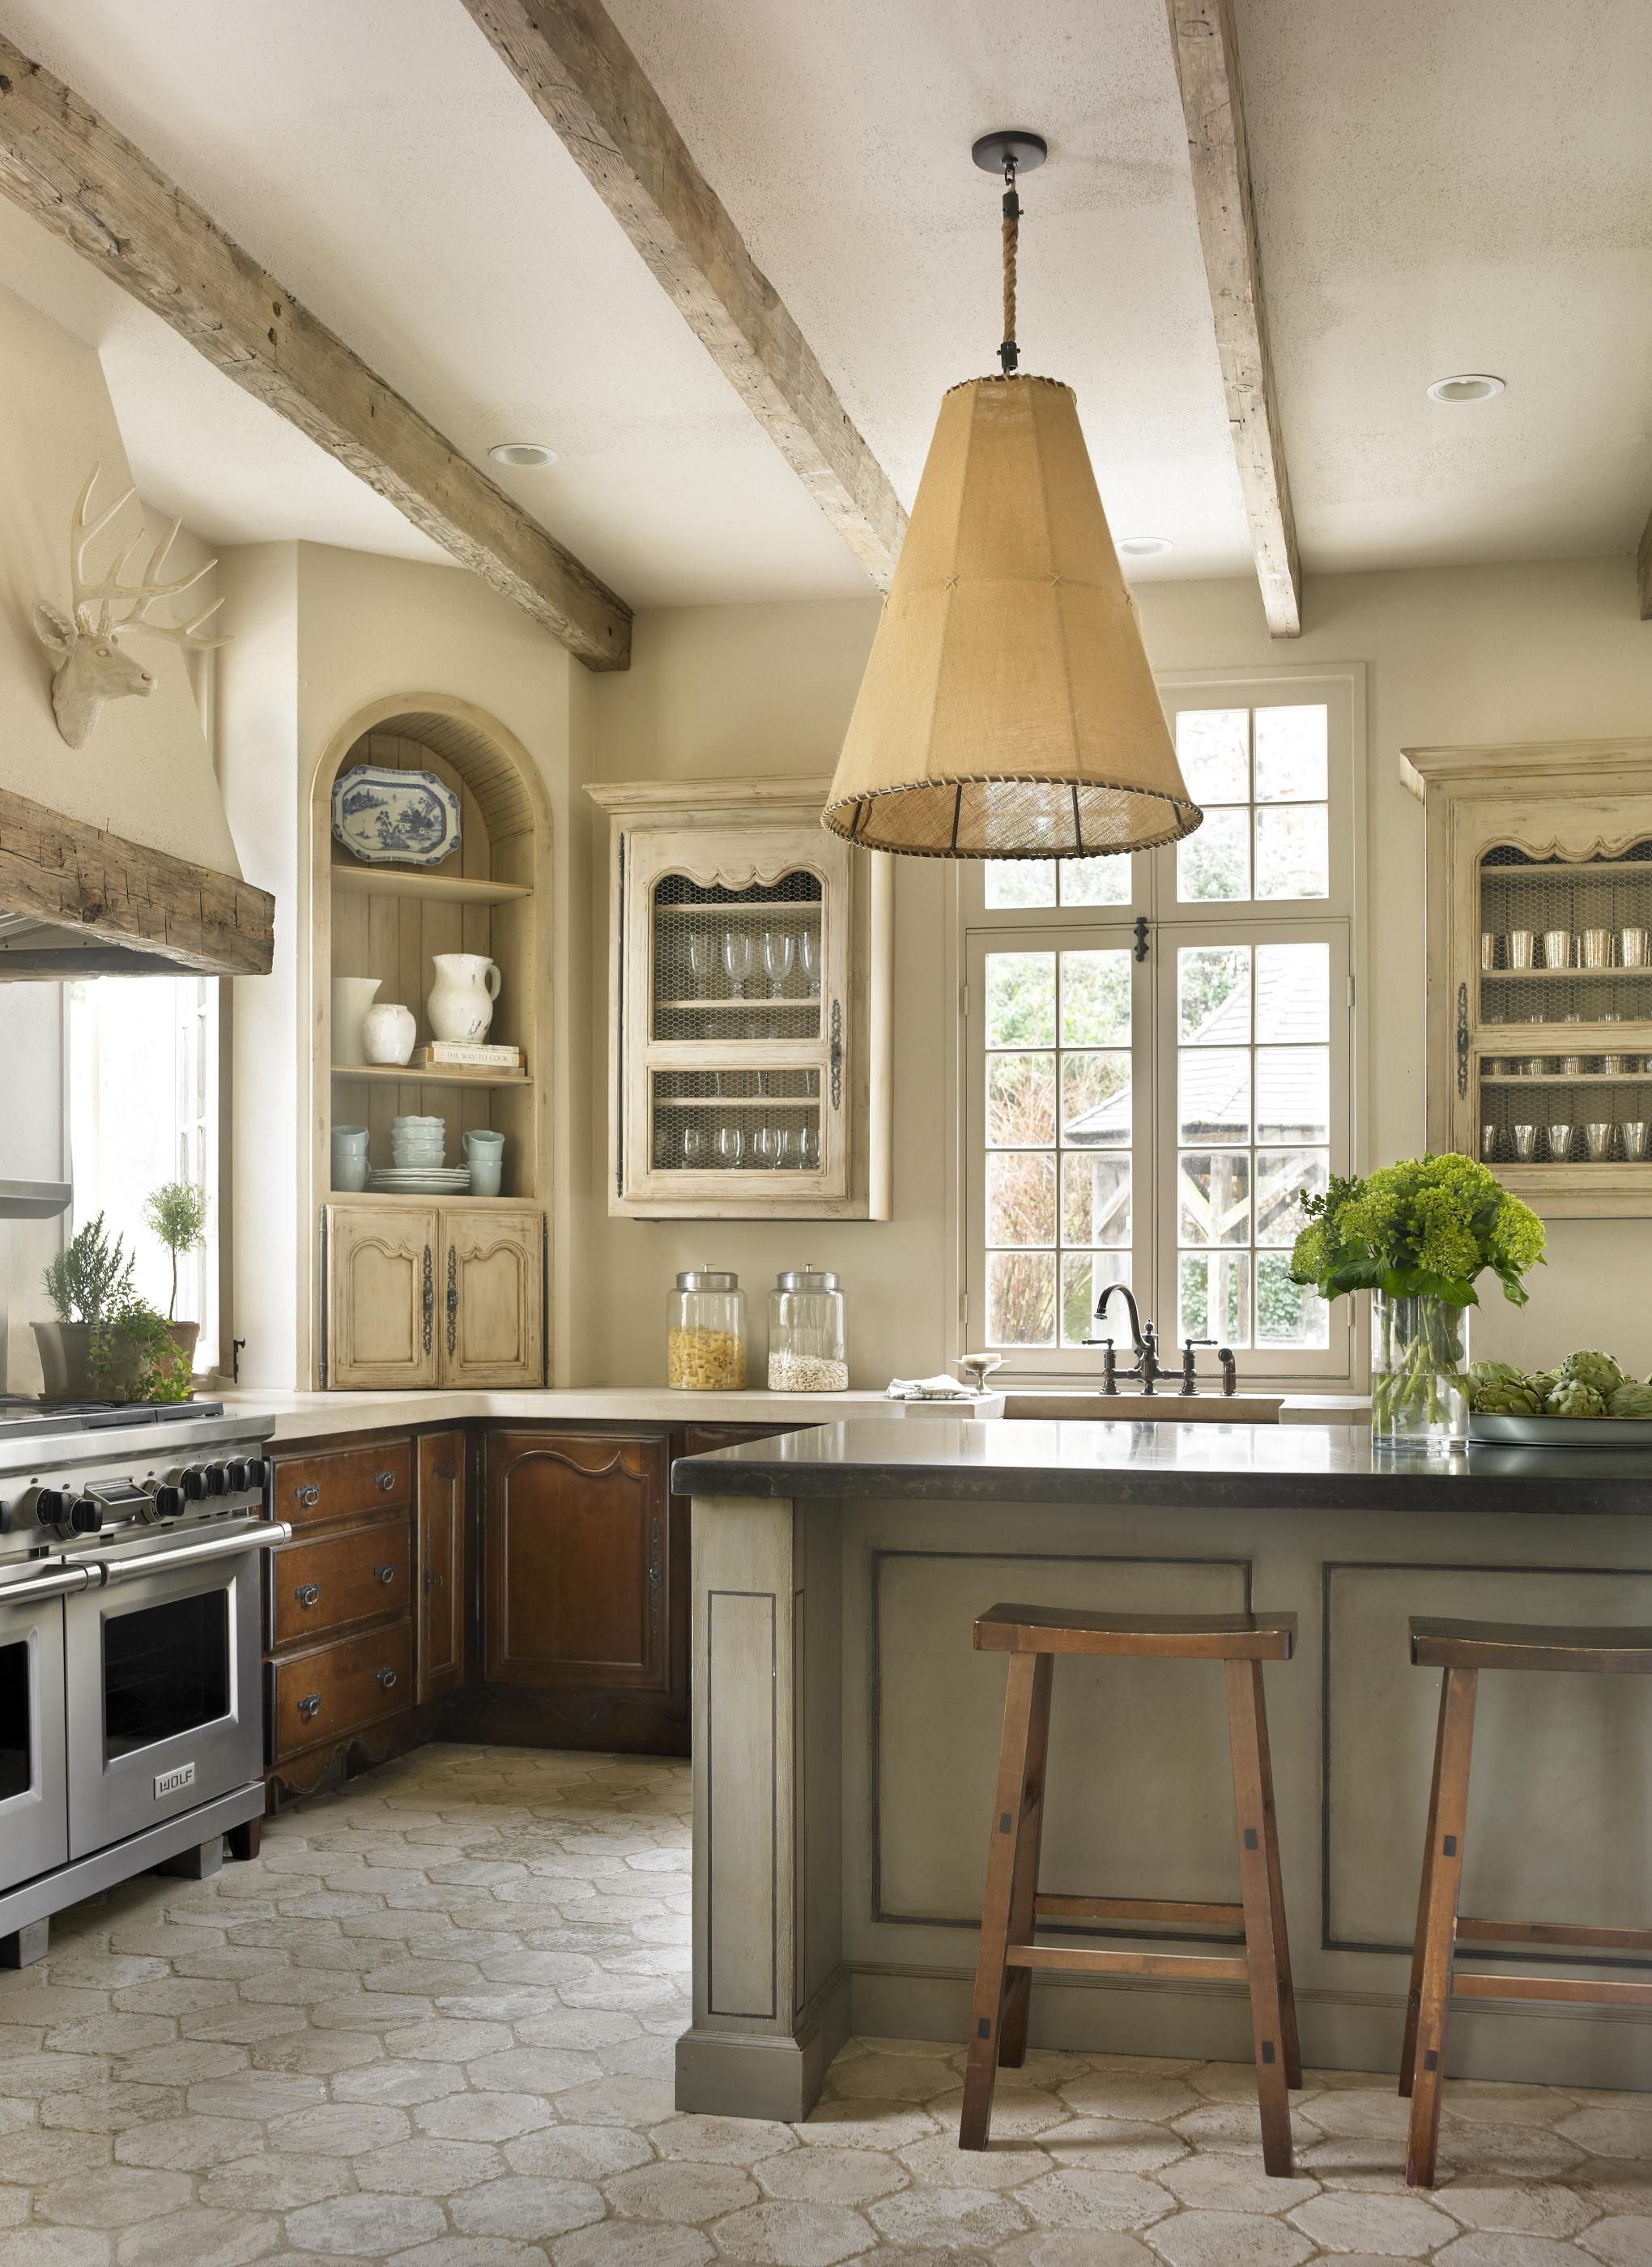 Country French Kitchens   For the Home in 2019   French ...